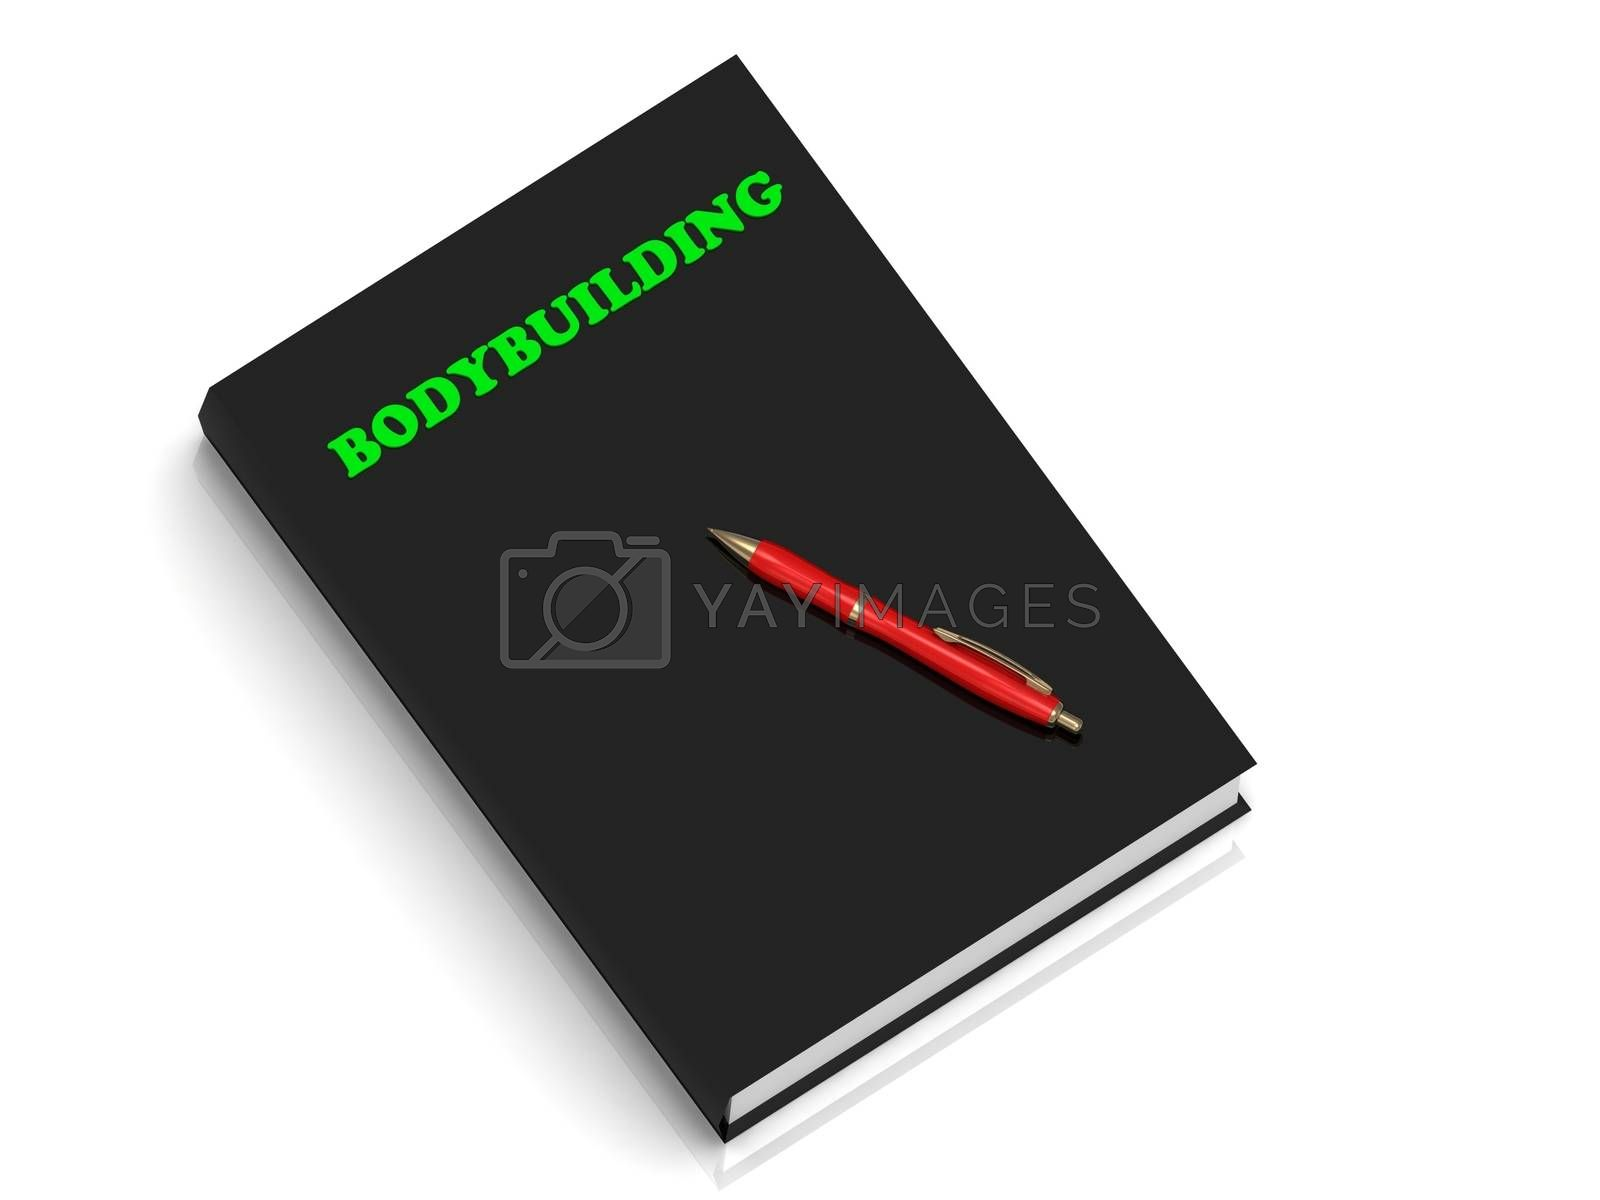 BODYBUILDING- inscription of green letters on black book on white background